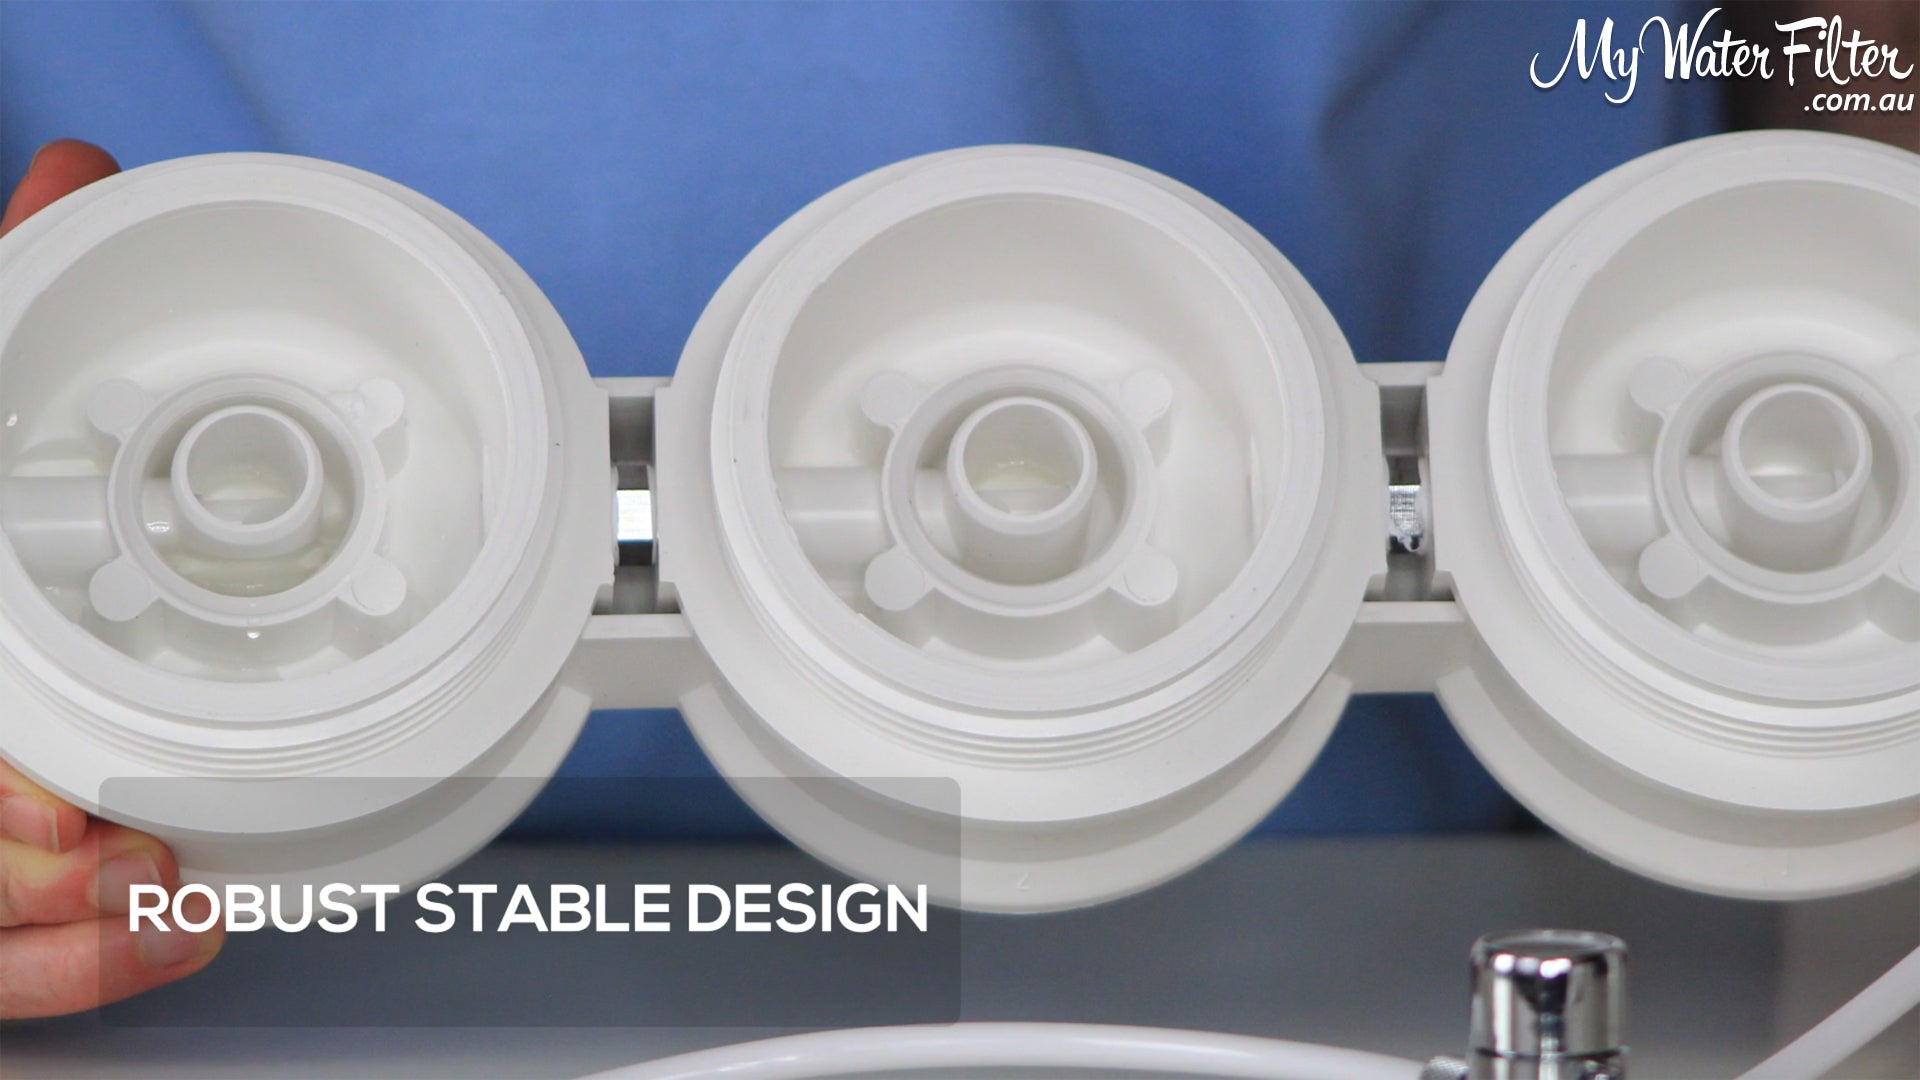 Ultrapure Ceramic Benchtop Water Filter Robust Stable Design